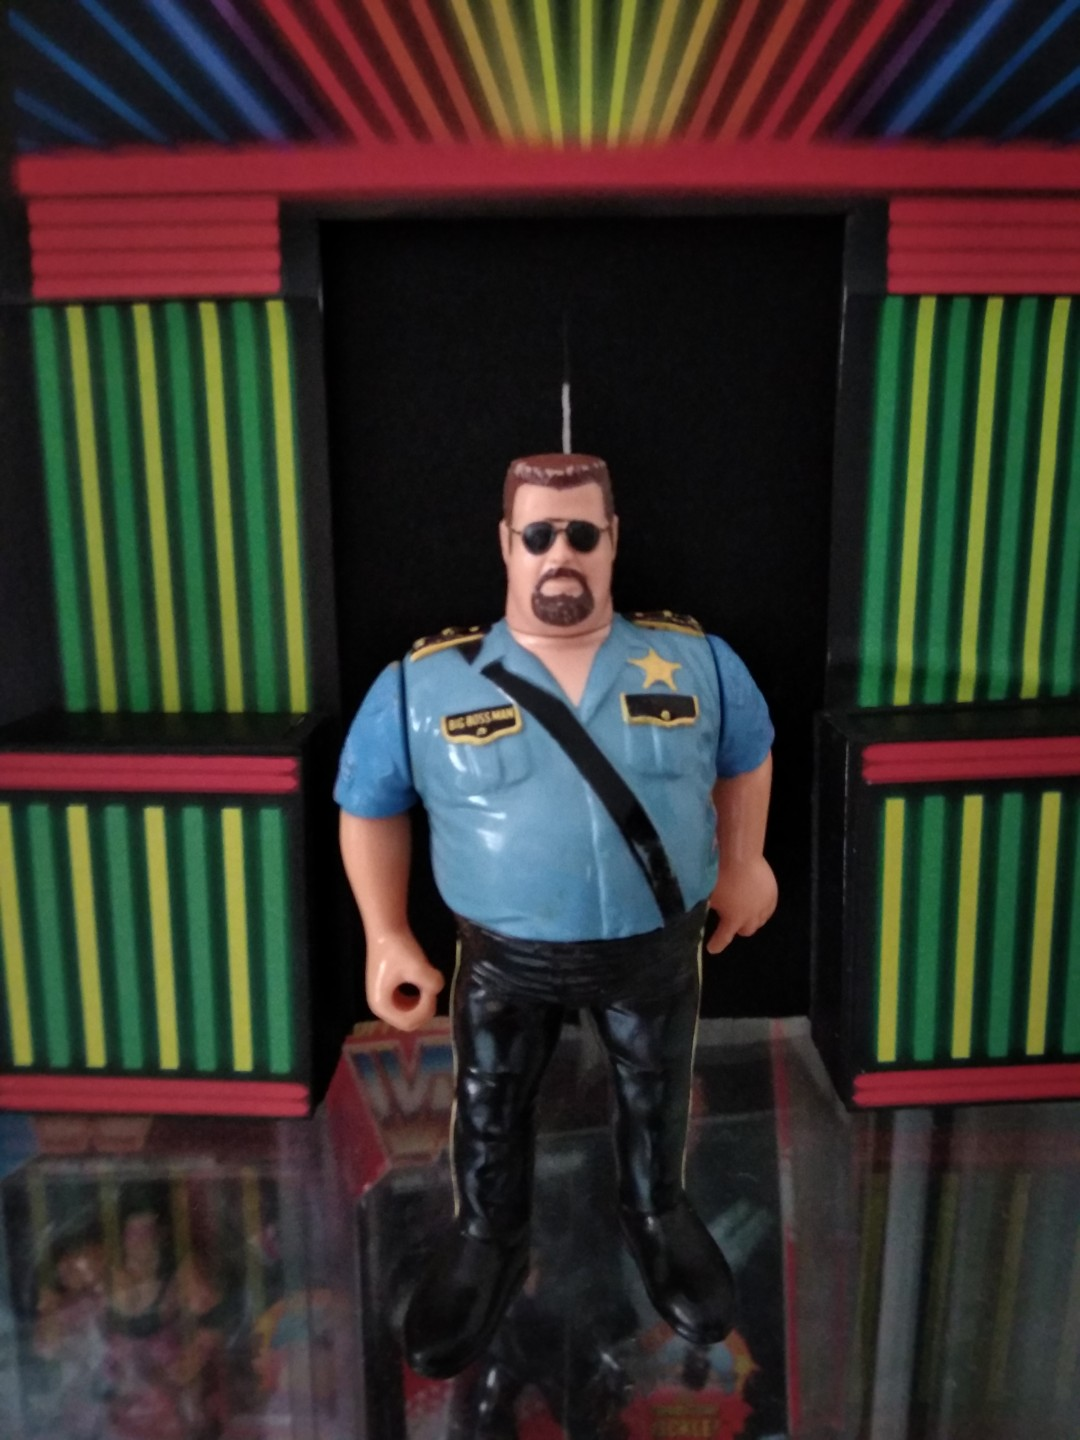 Hasbro Wwf Figures Big Boss Man With Shade Toys Games